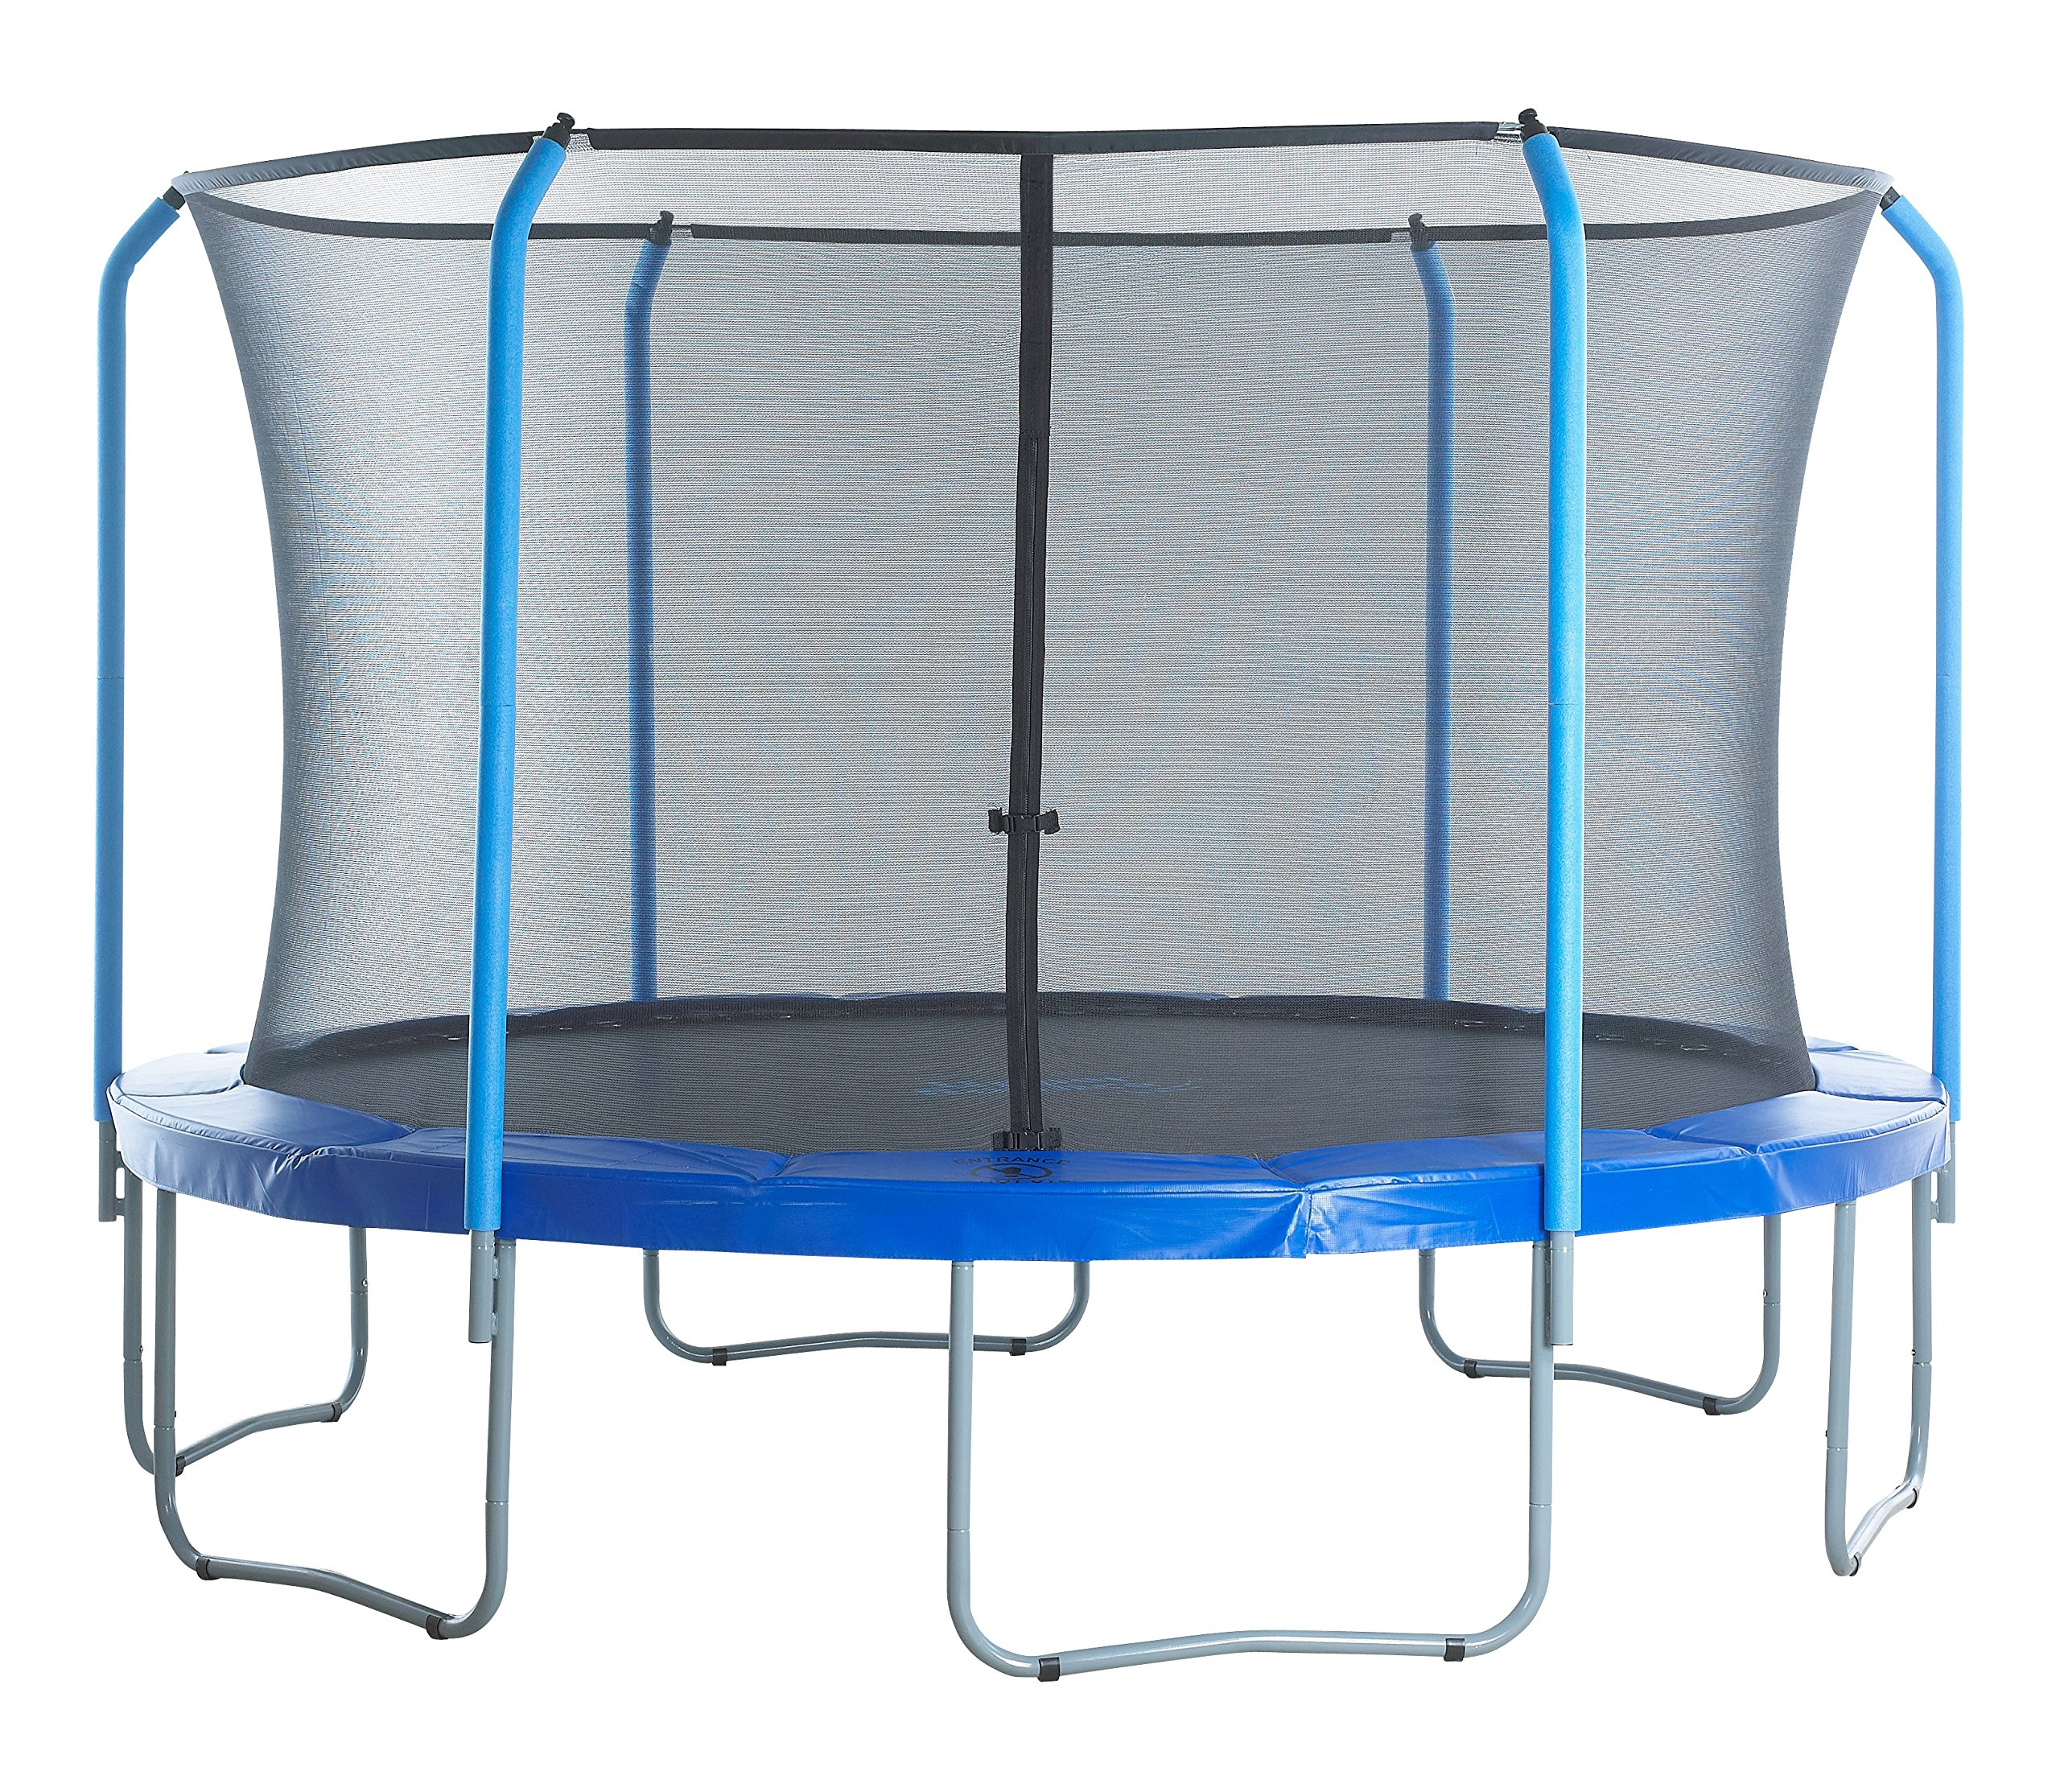 SKYTRIC Trampoline Enclosure Net (Universal) 15 ft Frame: 6 Curved Pole: with Top Ring Enclosure Systems -Sleeve on top Type- by SKYTRIC (Image #7)